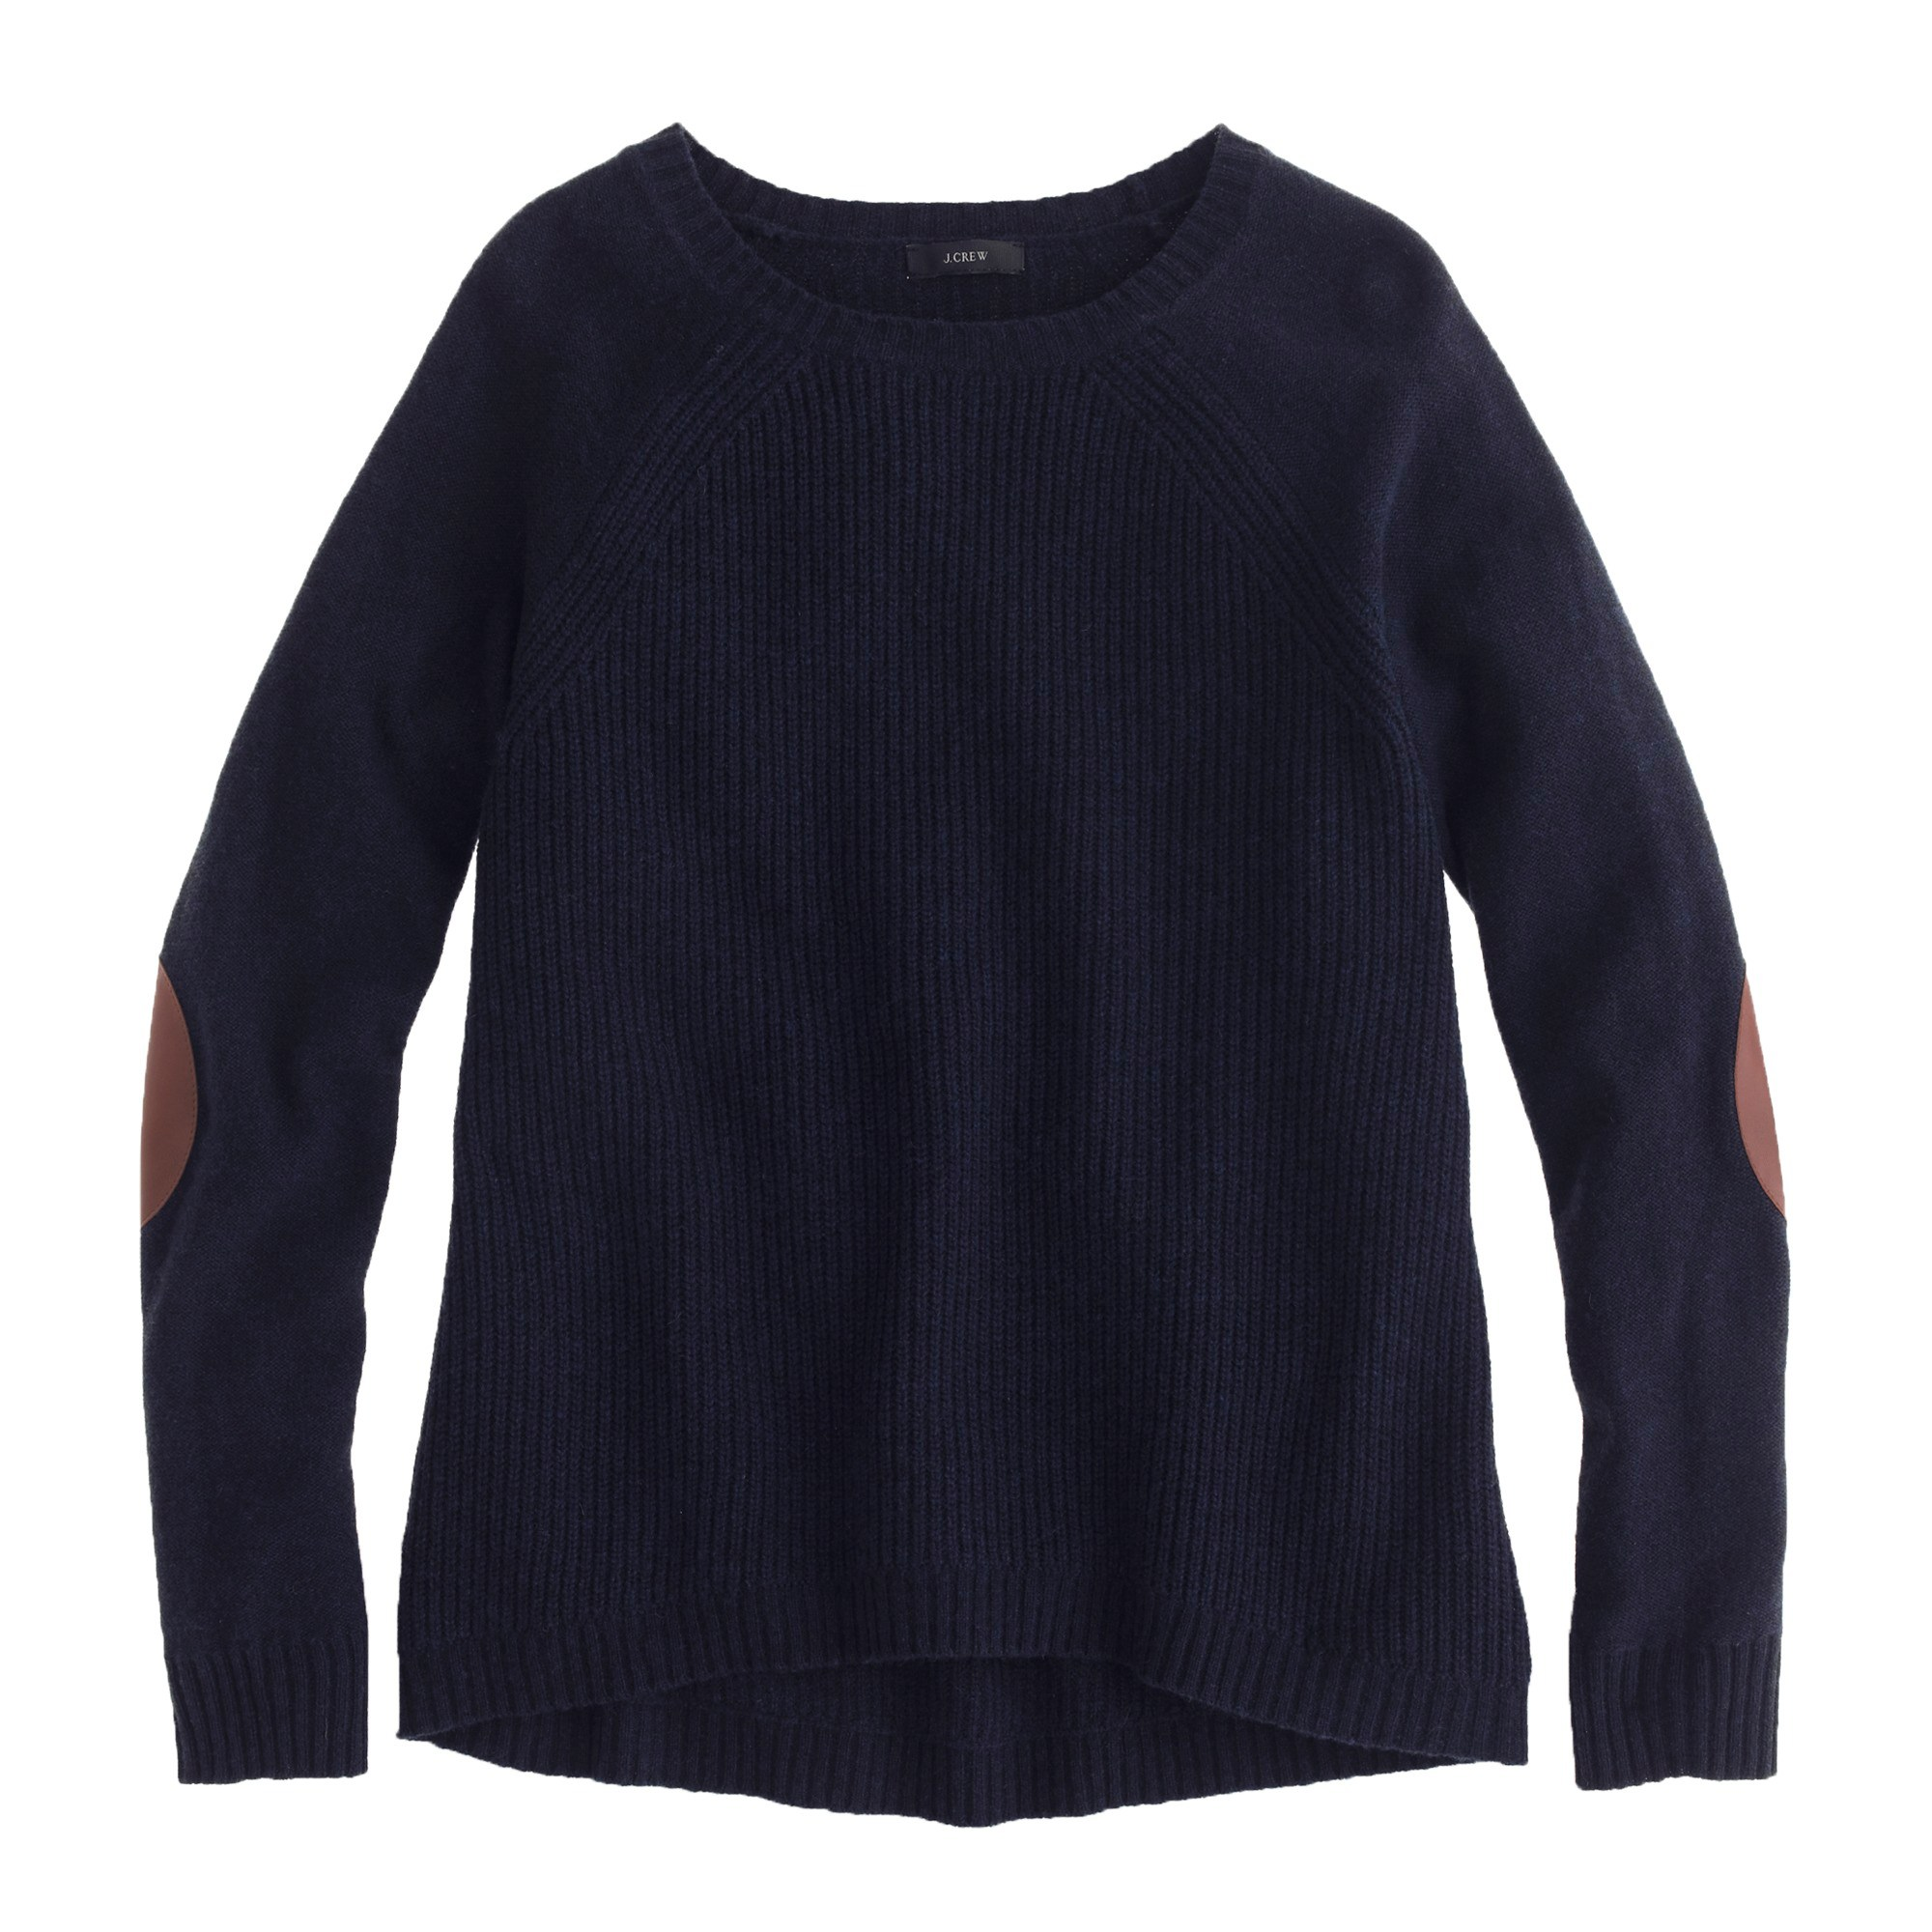 Elbow-patch sweater : Women pullovers | J.Crew